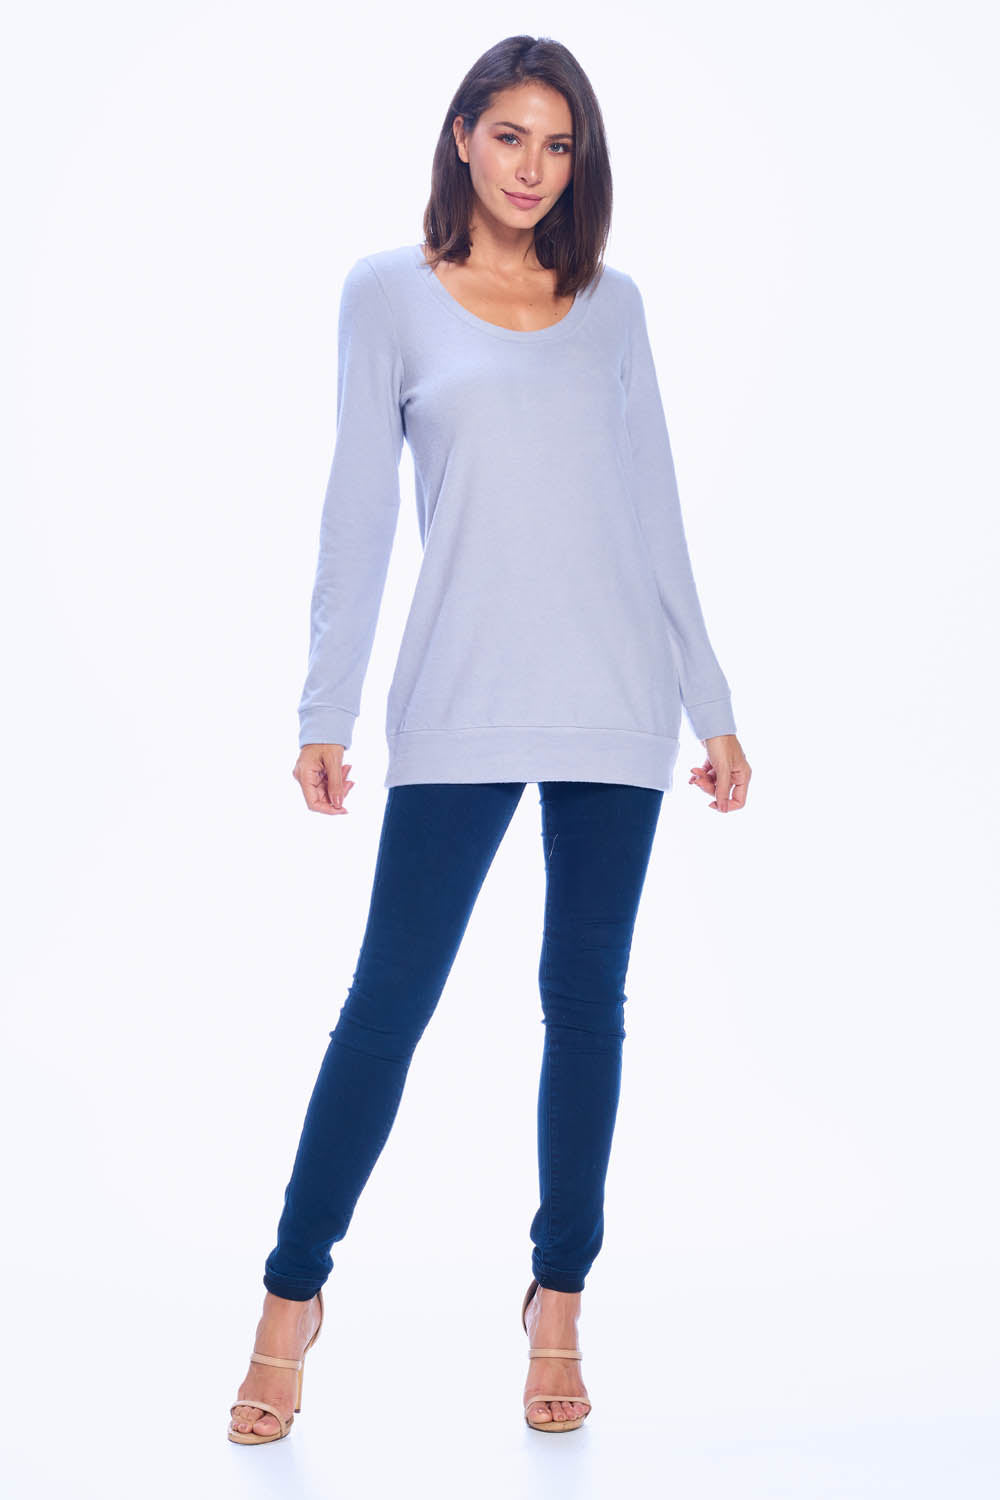 Scoop Neck Banded Tunic Top